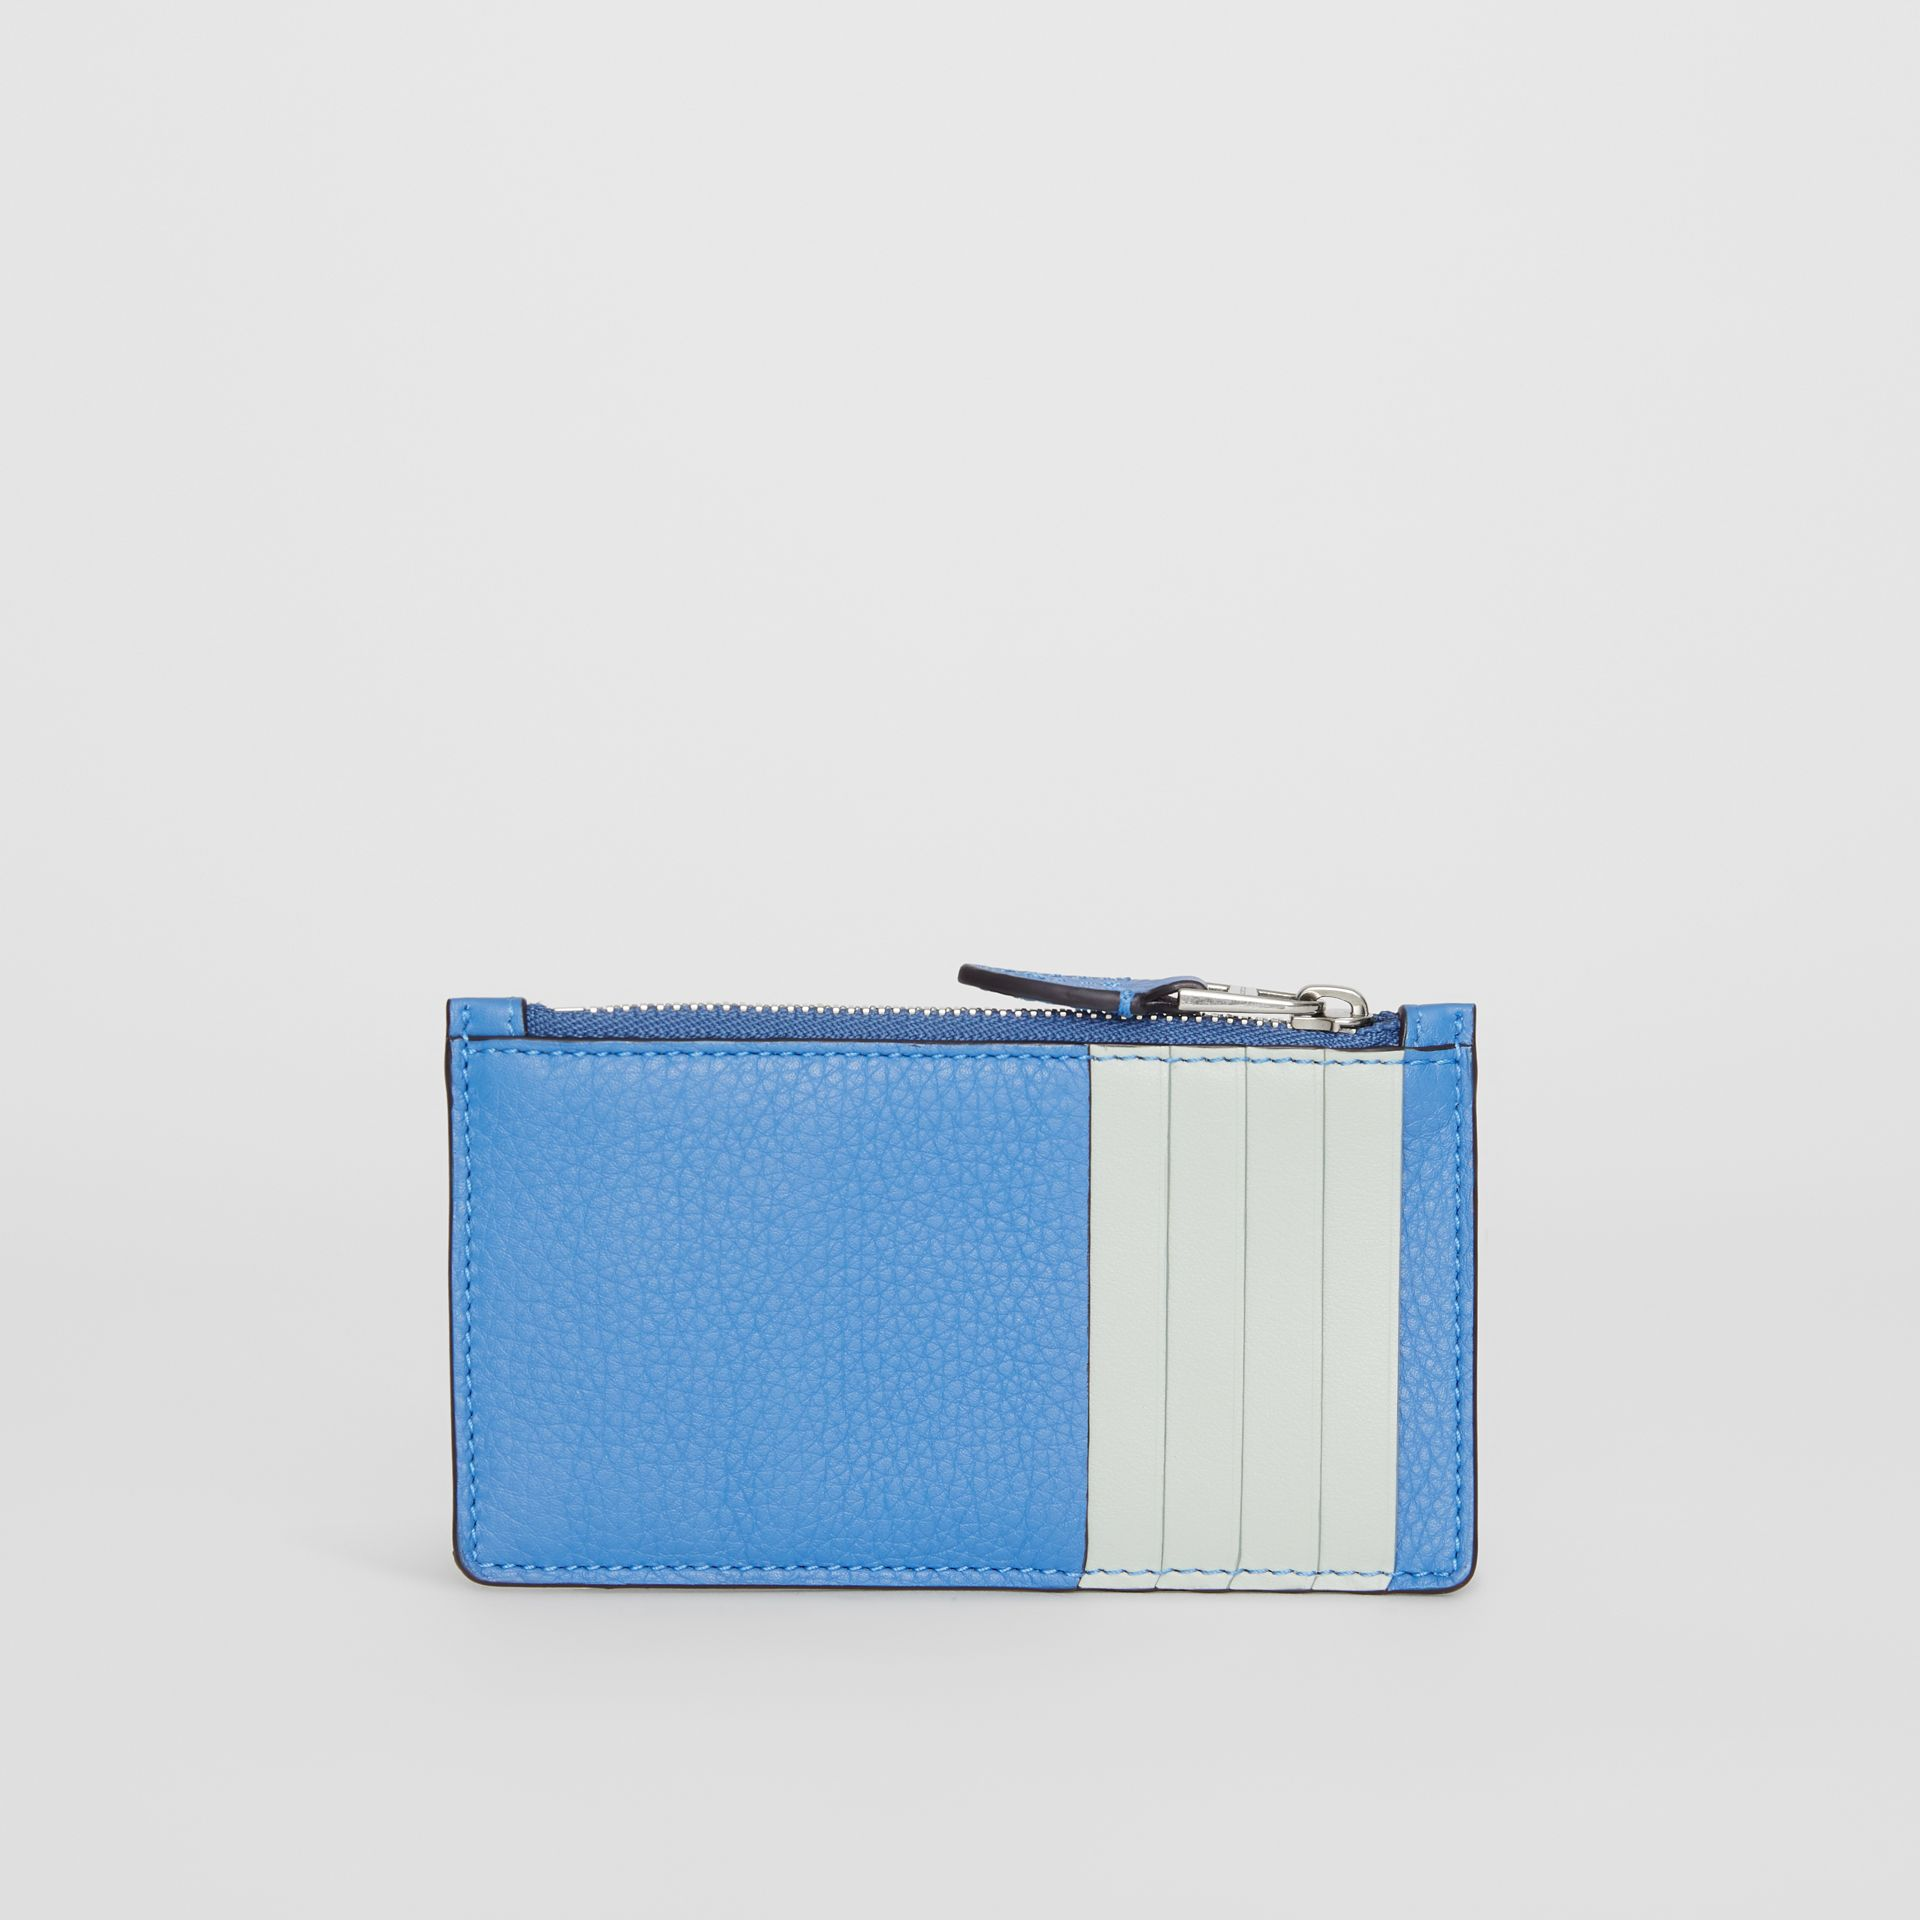 Two-tone Leather Card Case in Hydrangea Blue - Women | Burberry United Kingdom - gallery image 5